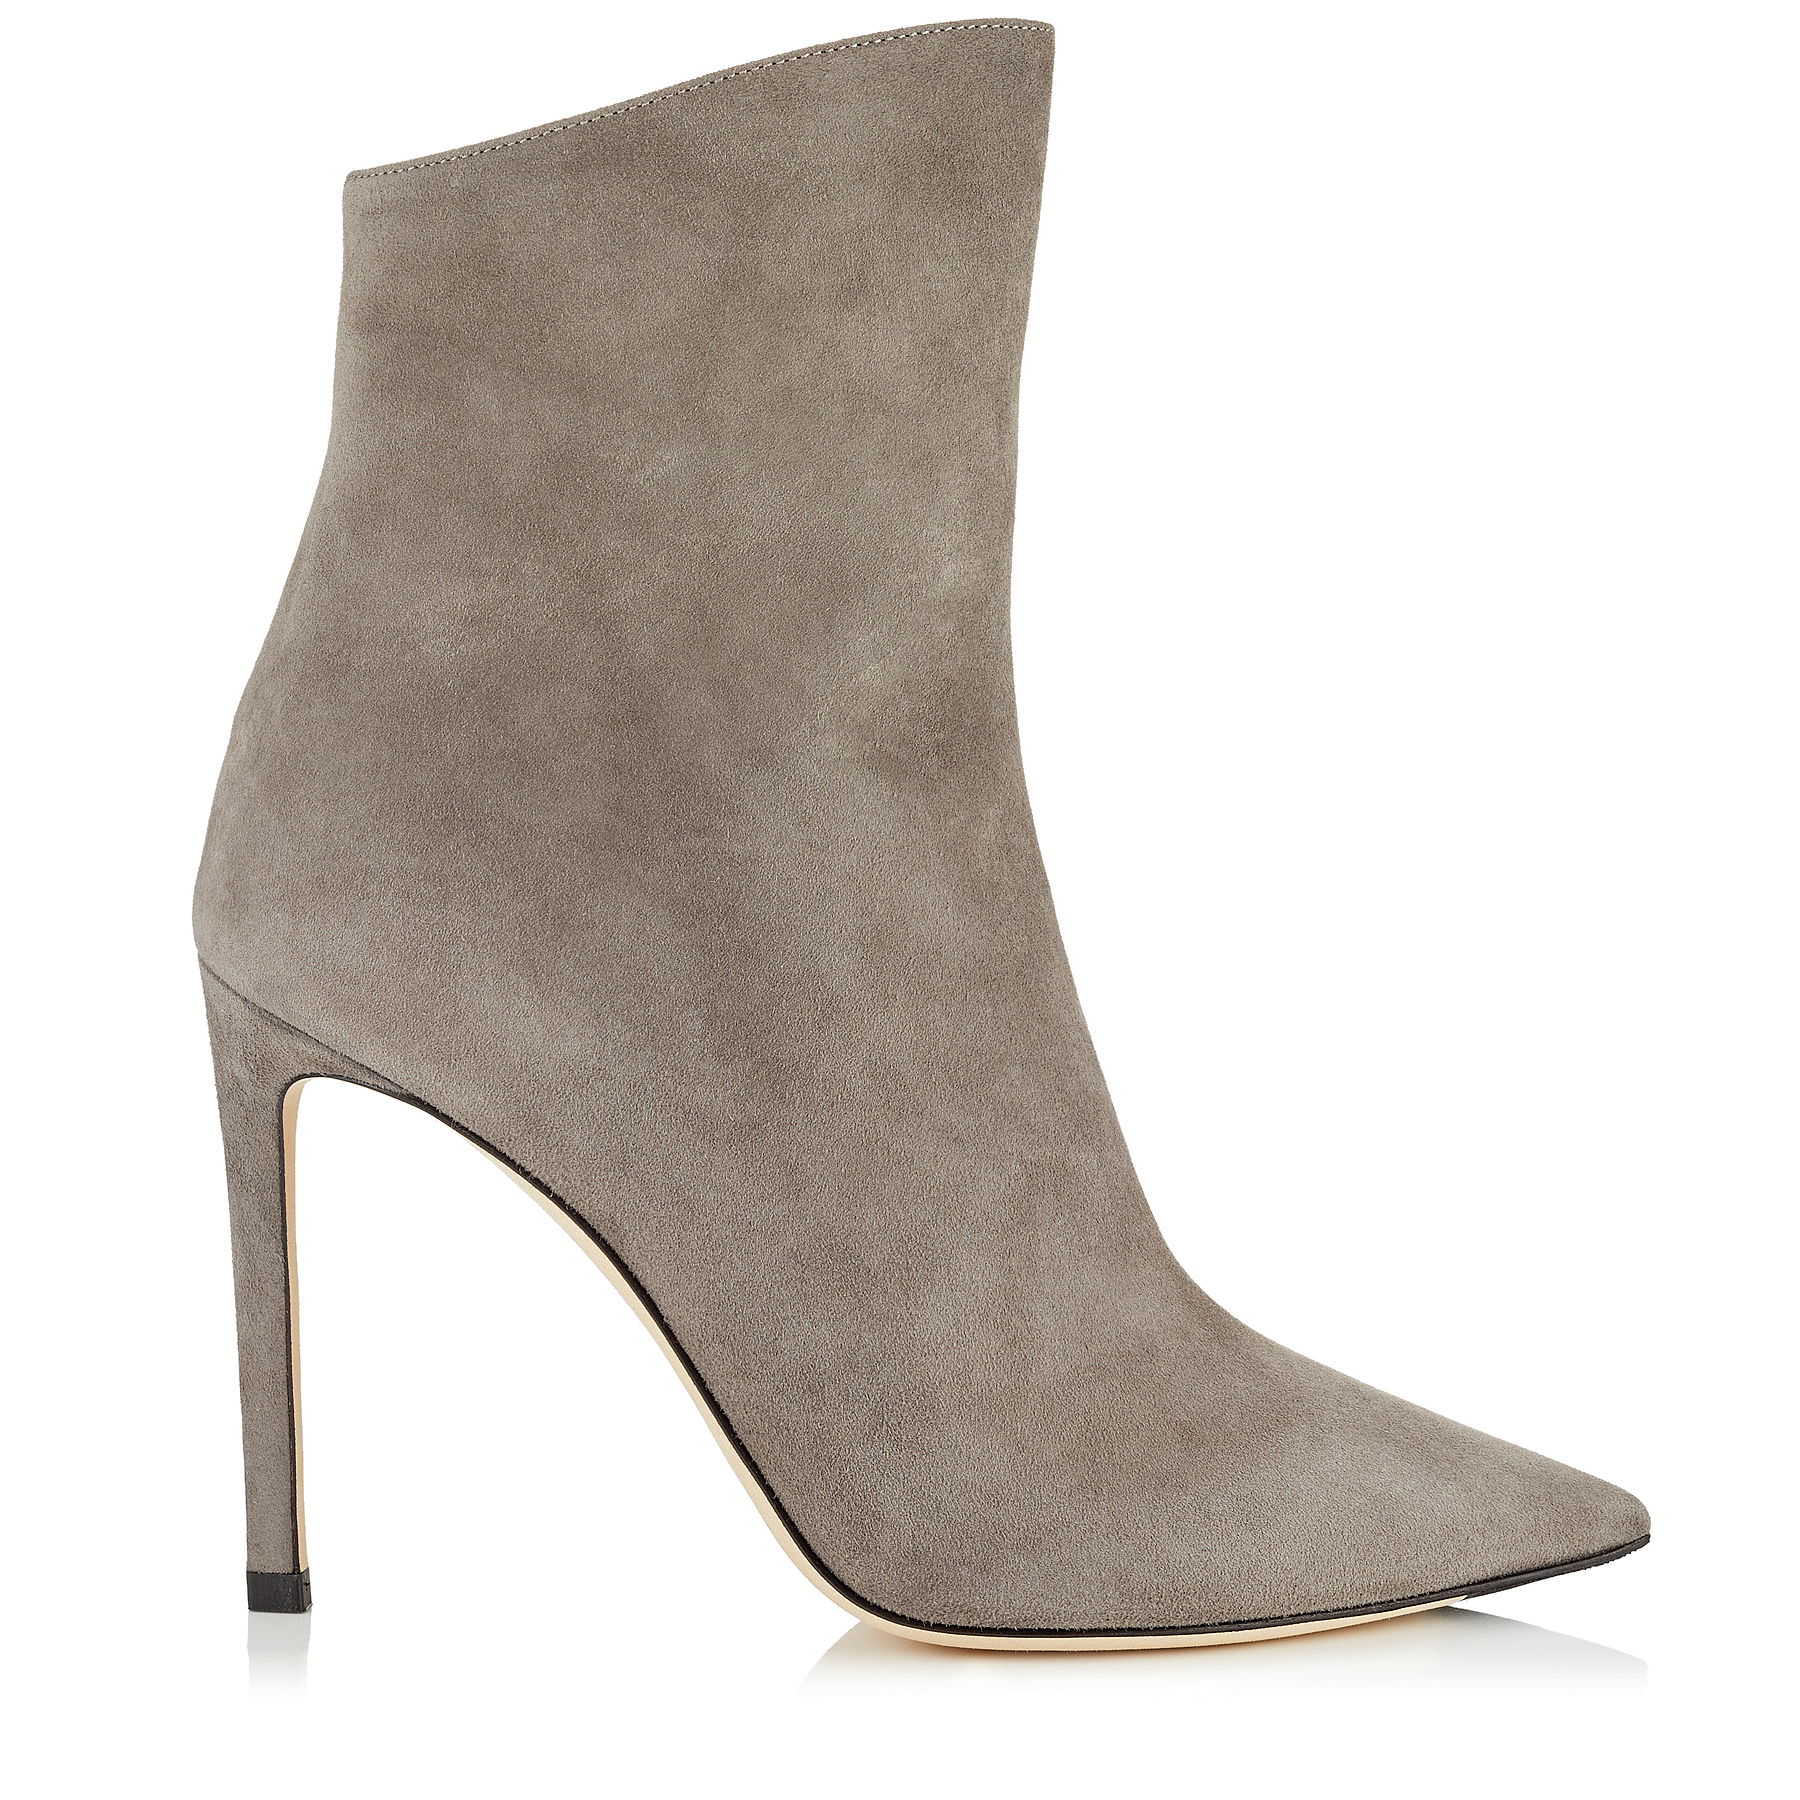 HELAINE 100 Dark Grey Suede Booties by Jimmy Choo